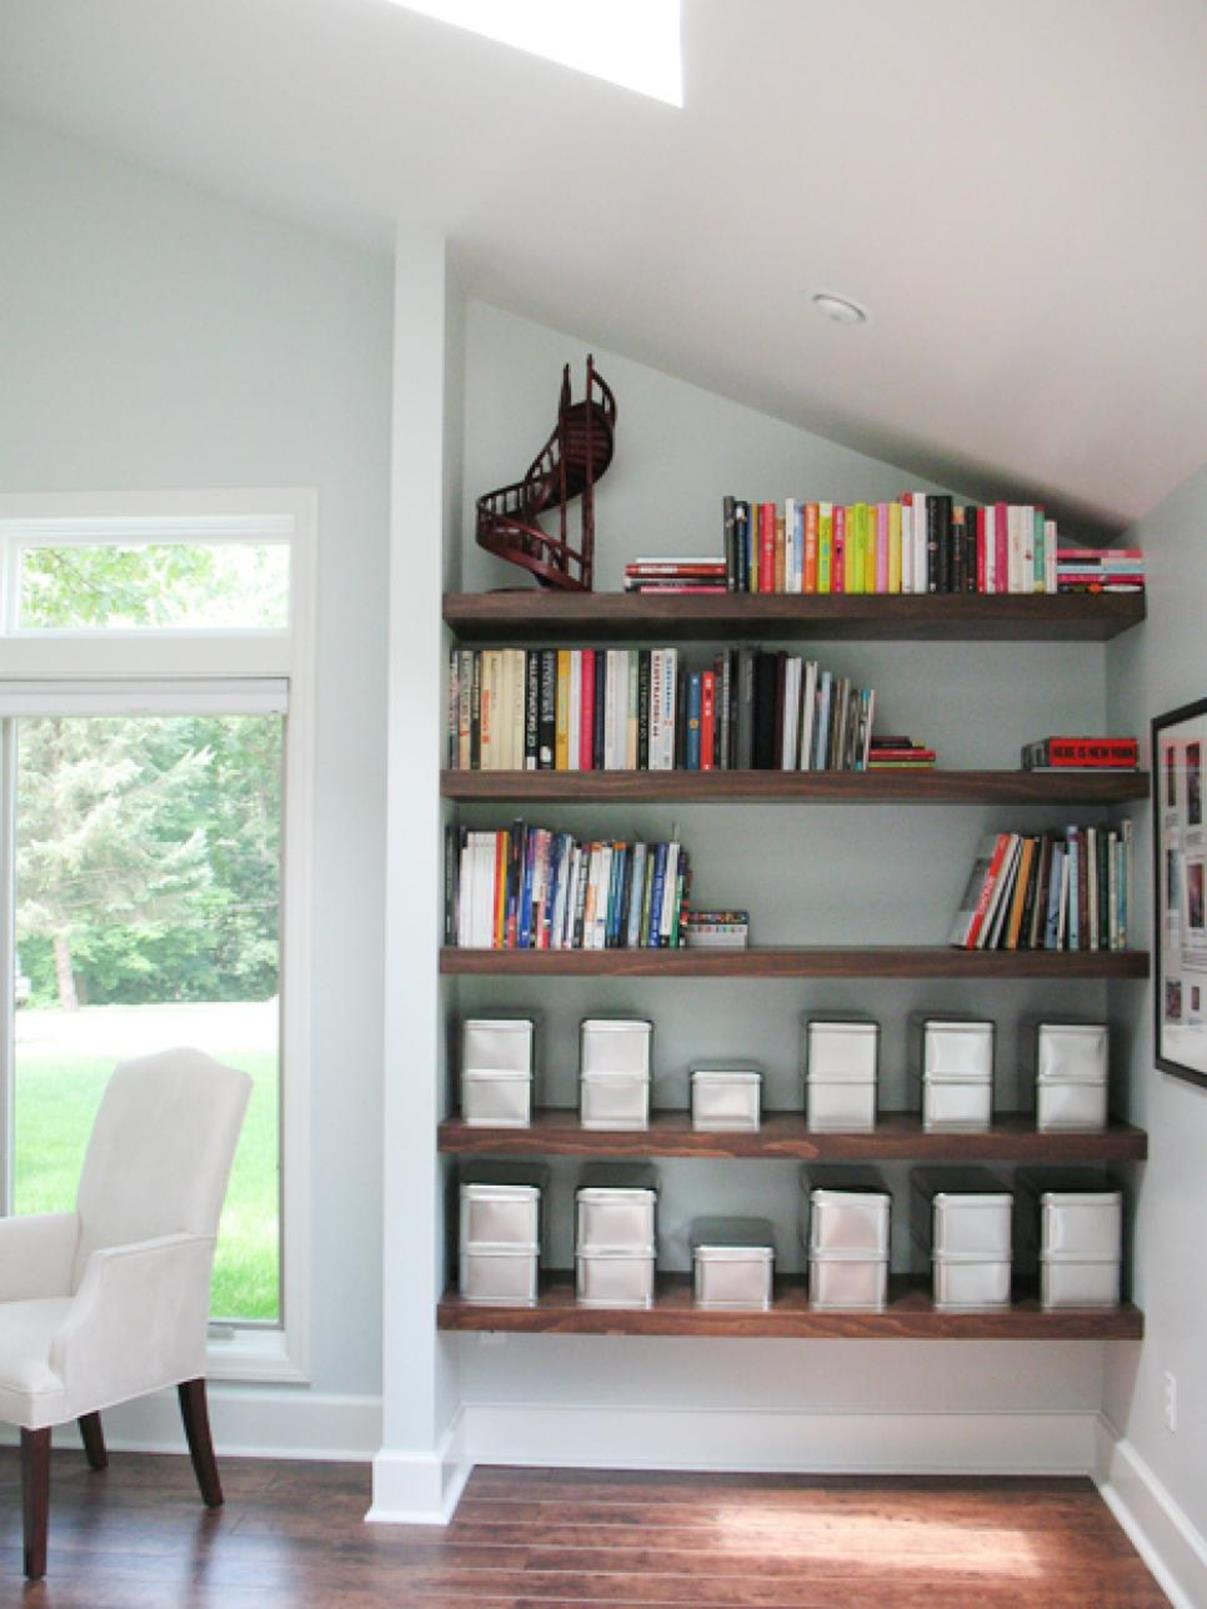 Perfect Bookshelves For Small Spaces and Decor Ideas 39